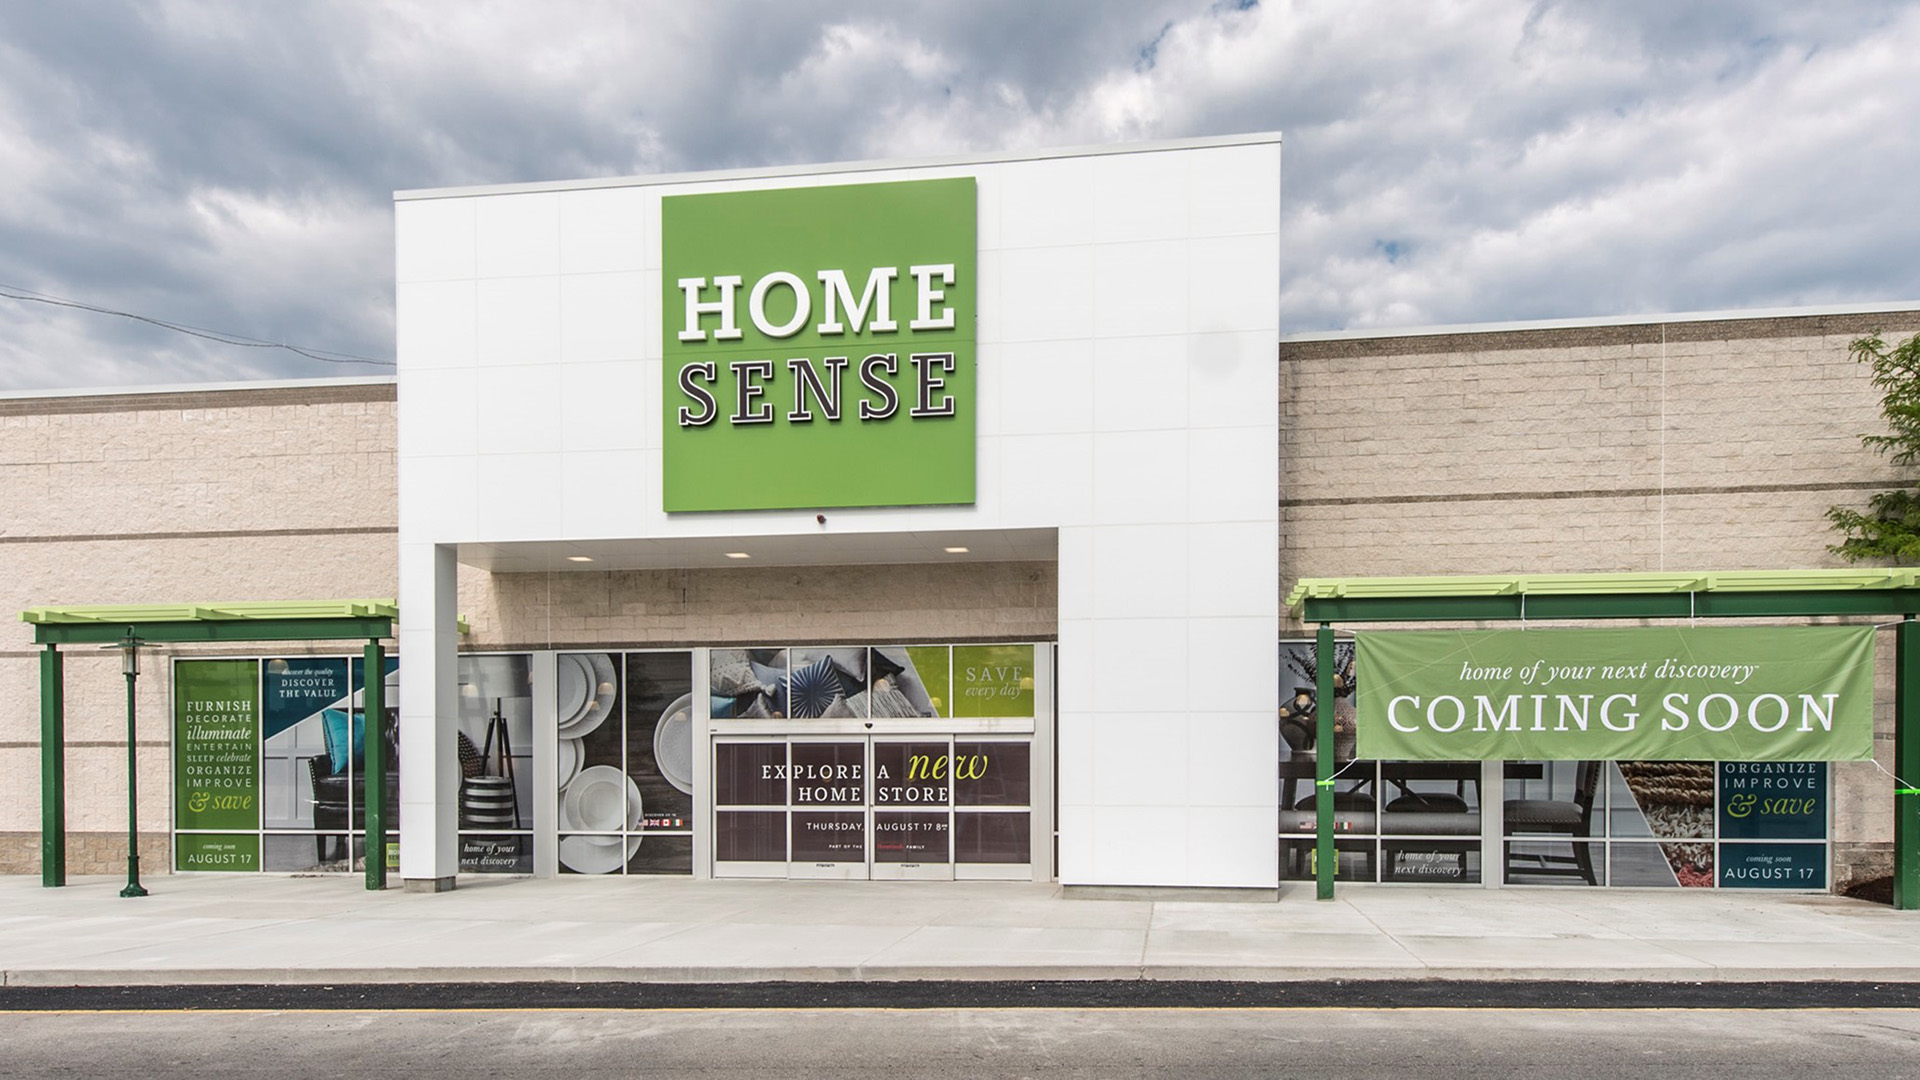 Homesense Homegoods Sister Store Is Coming To Us